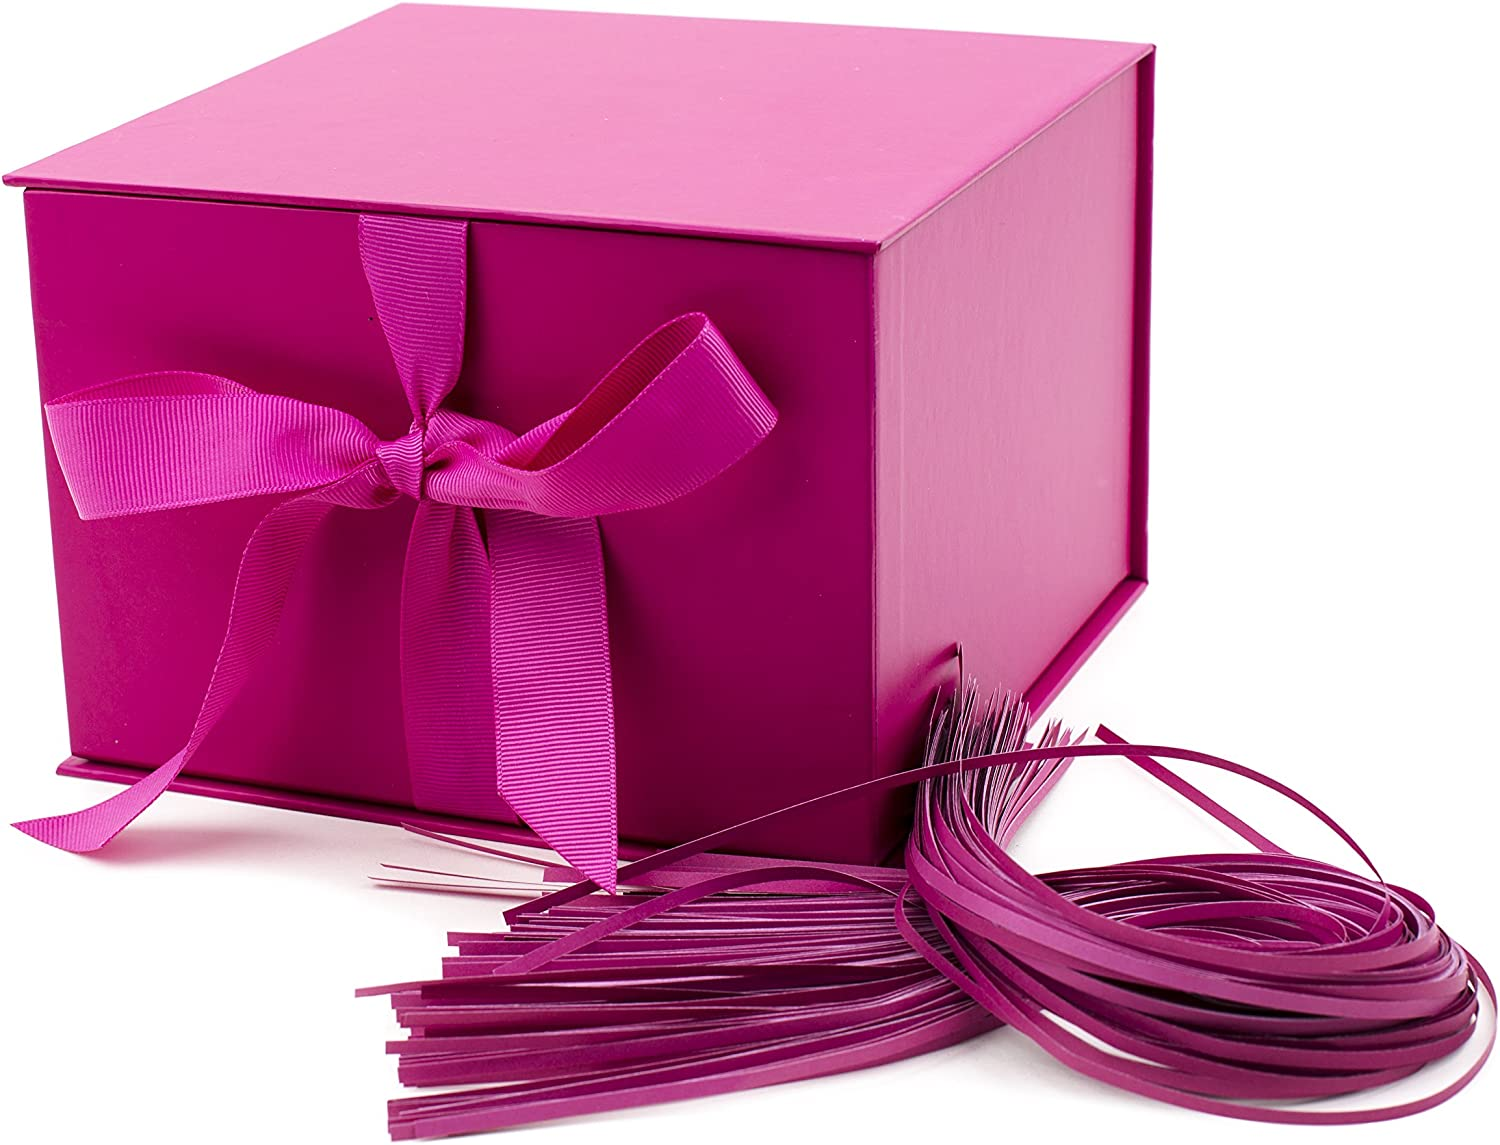 """Hallmark 7"""" Gift Box (Hot Pink) for Mother's Day, Birthdays, Baby Showers, Bridal Showers, Bridesmaids Gifts, Bachelorette Parties, Valentines Day and More"""